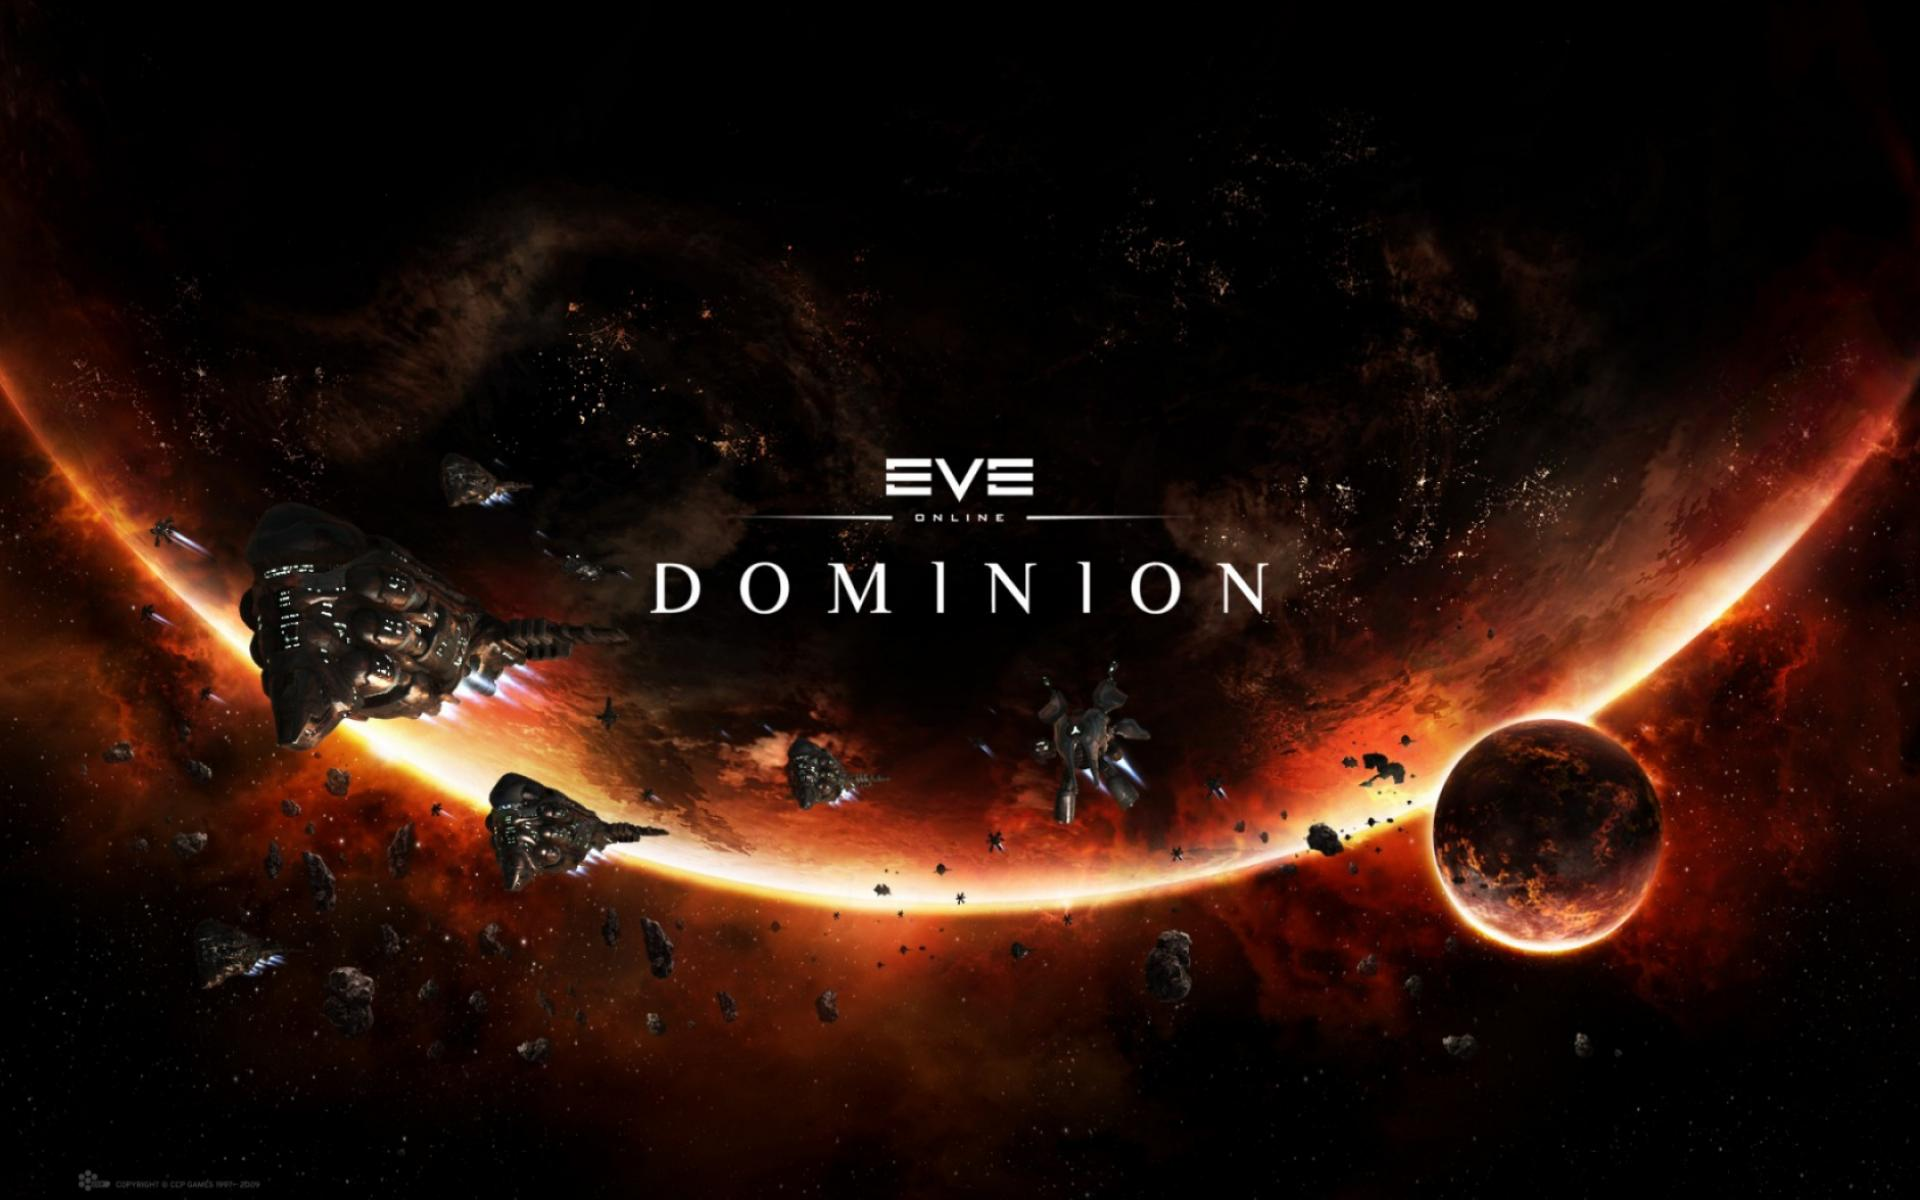 ���� EVE Online Dominion 1920x1200